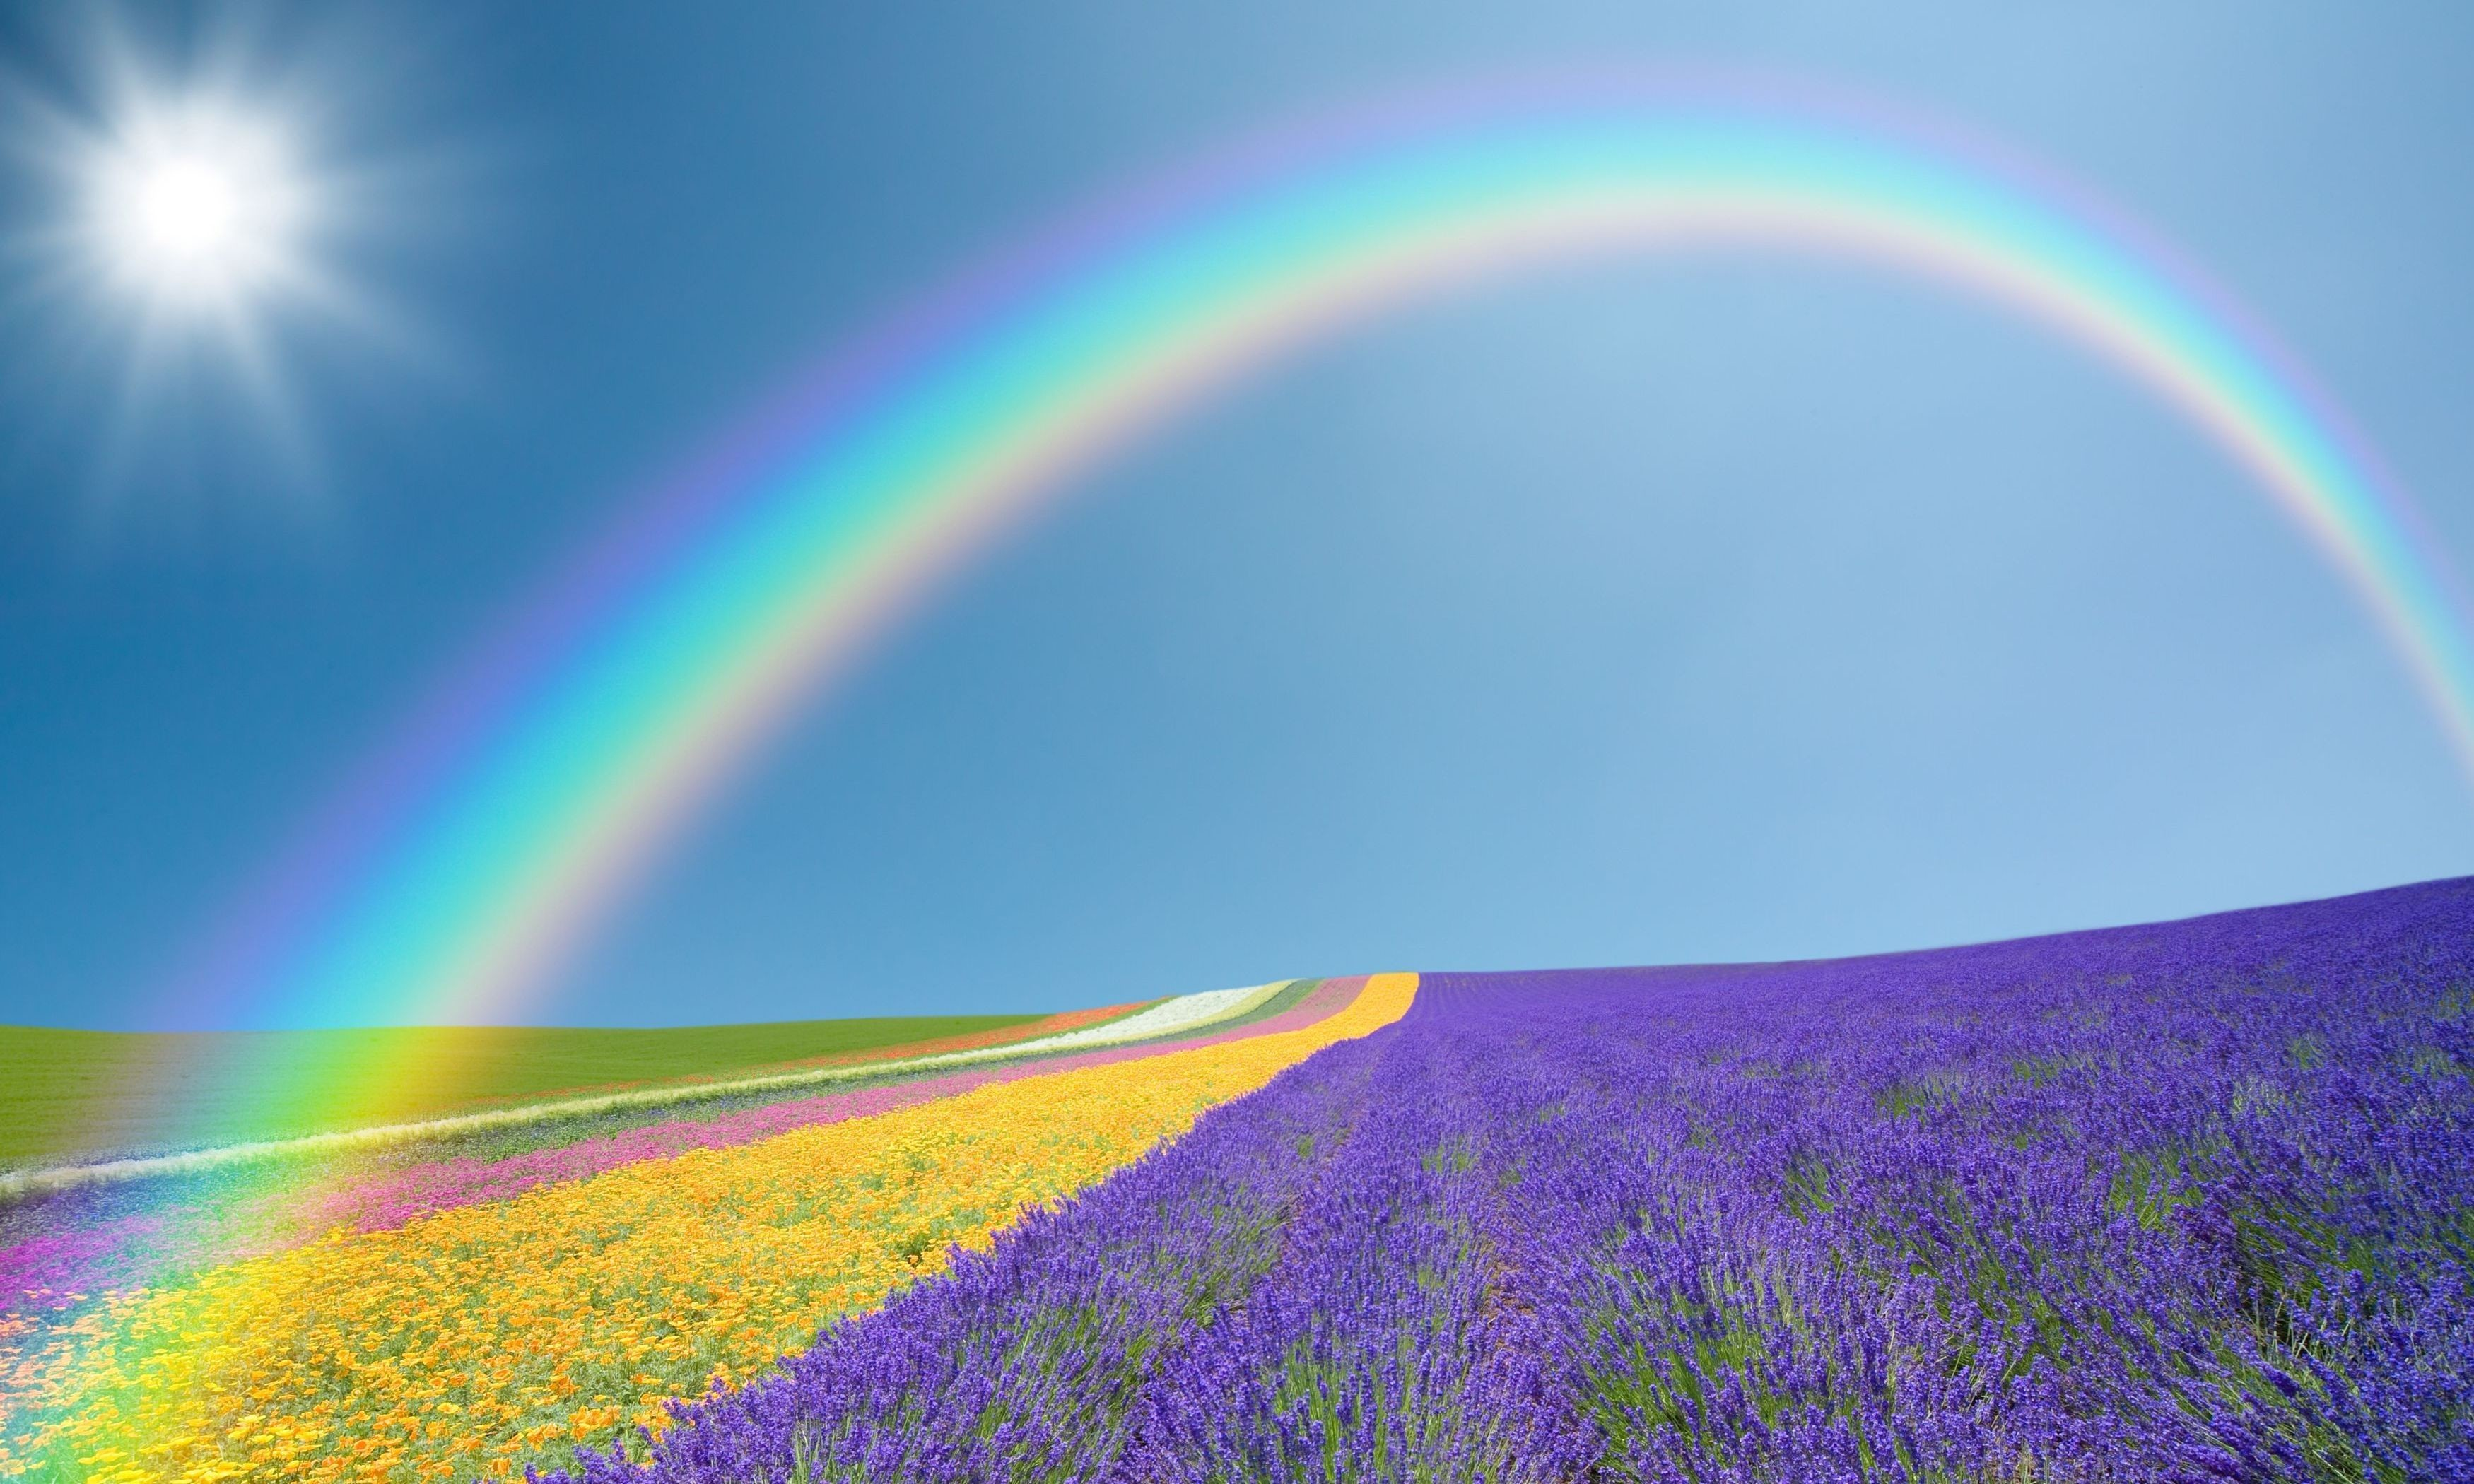 3500x2100 Rainbow Wallpaper Rainbow Wallpaper Rainbow Wallpaper Rainbow Wallpaper  Rainbow Wallpaper ...